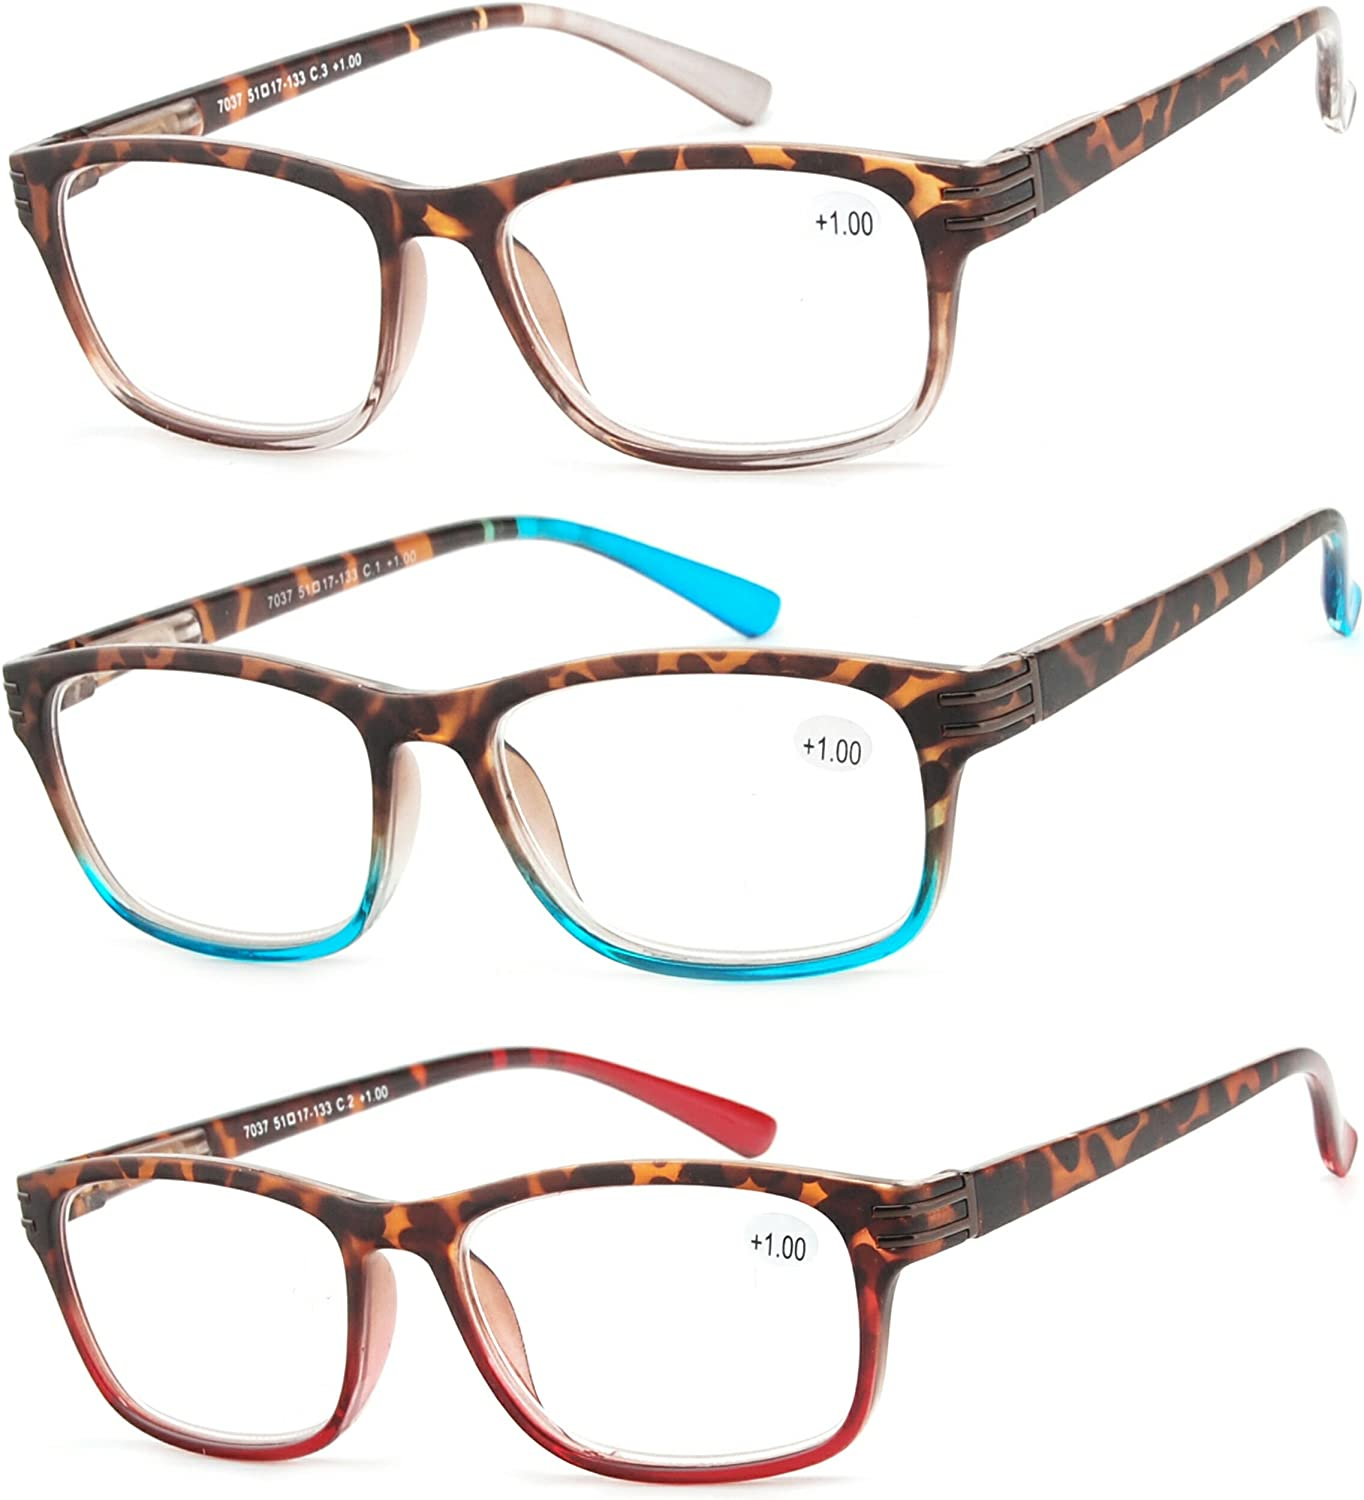 Reading Glasses Oakland Mall 3 Pair Great Value Men a Stylish Fashion Readers cheap